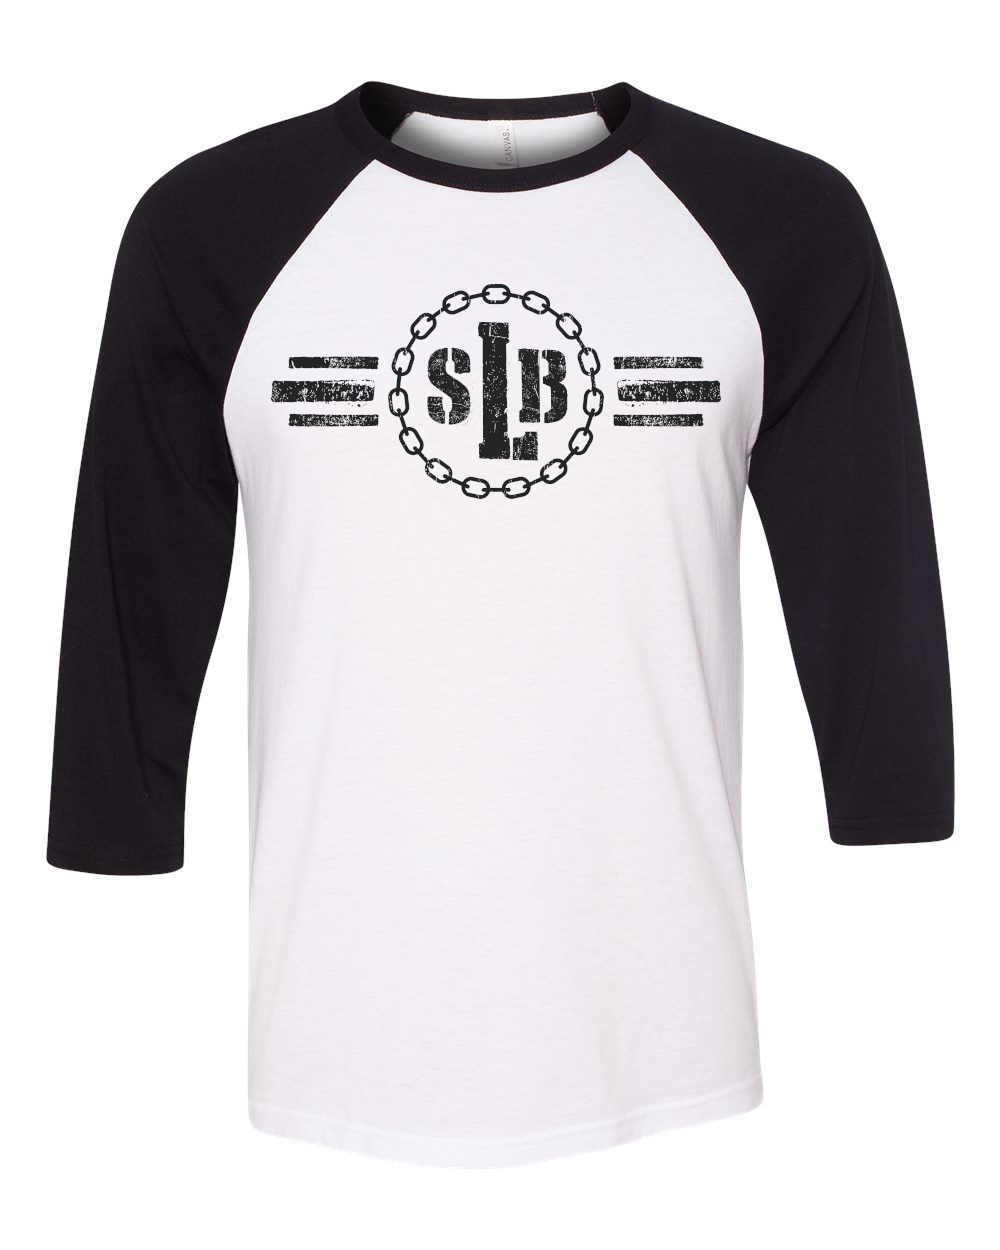 Unisex 3/4 Sleeve Raglan Tee - SLB Logo Double-Sided White w/ Black Sleeves